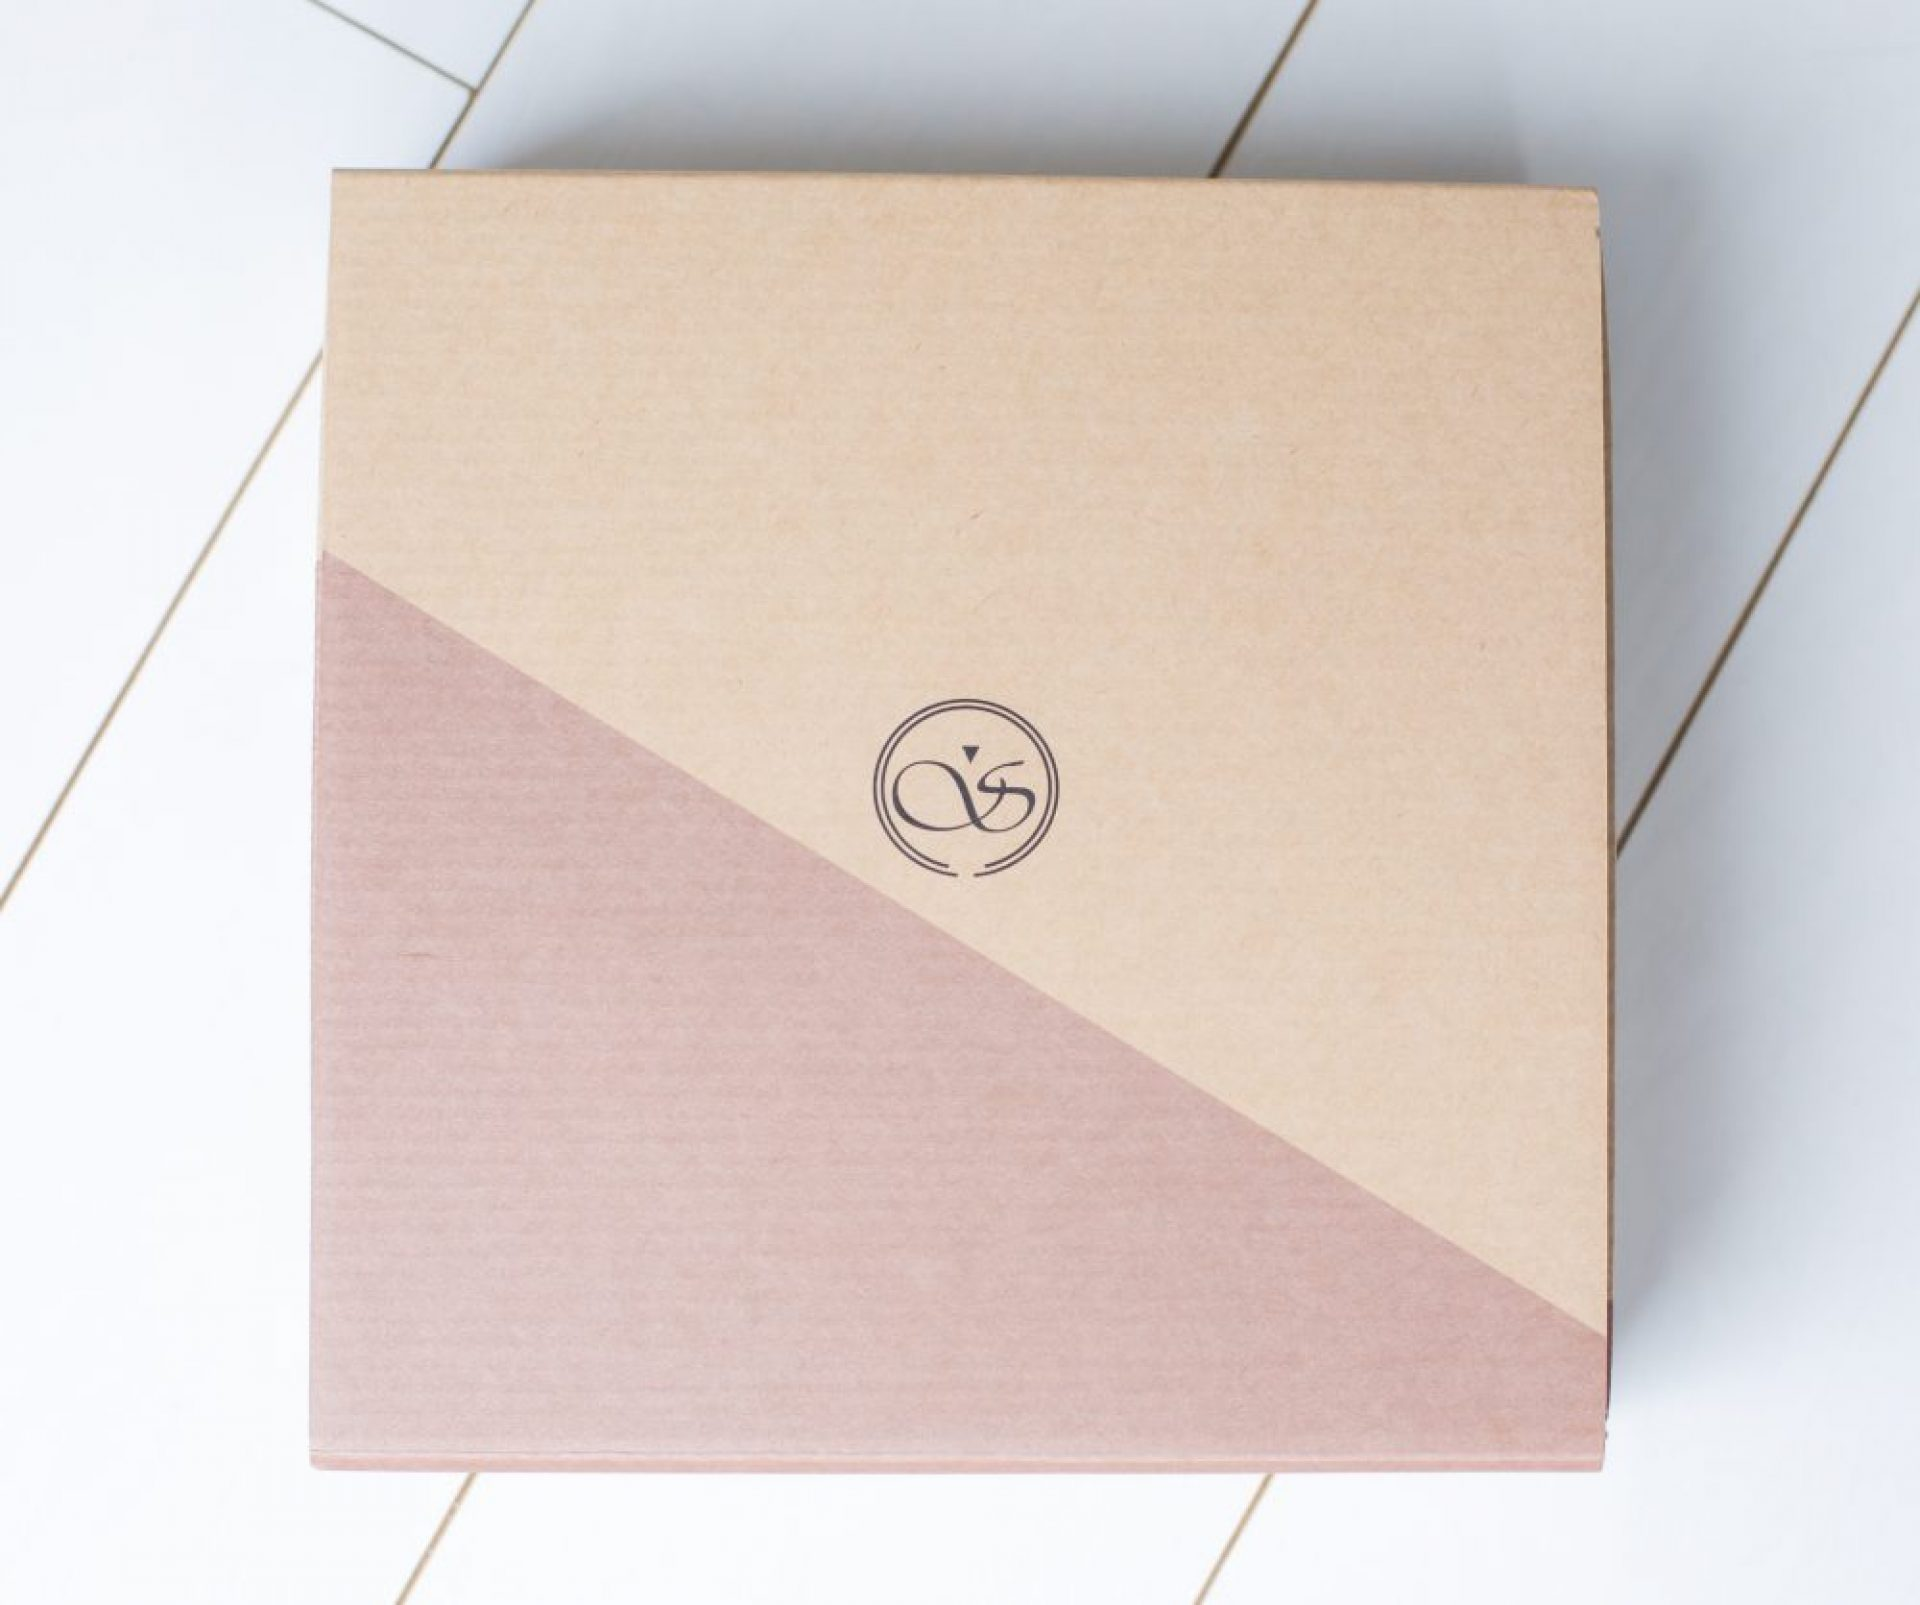 Limited Edition special StyleTone box